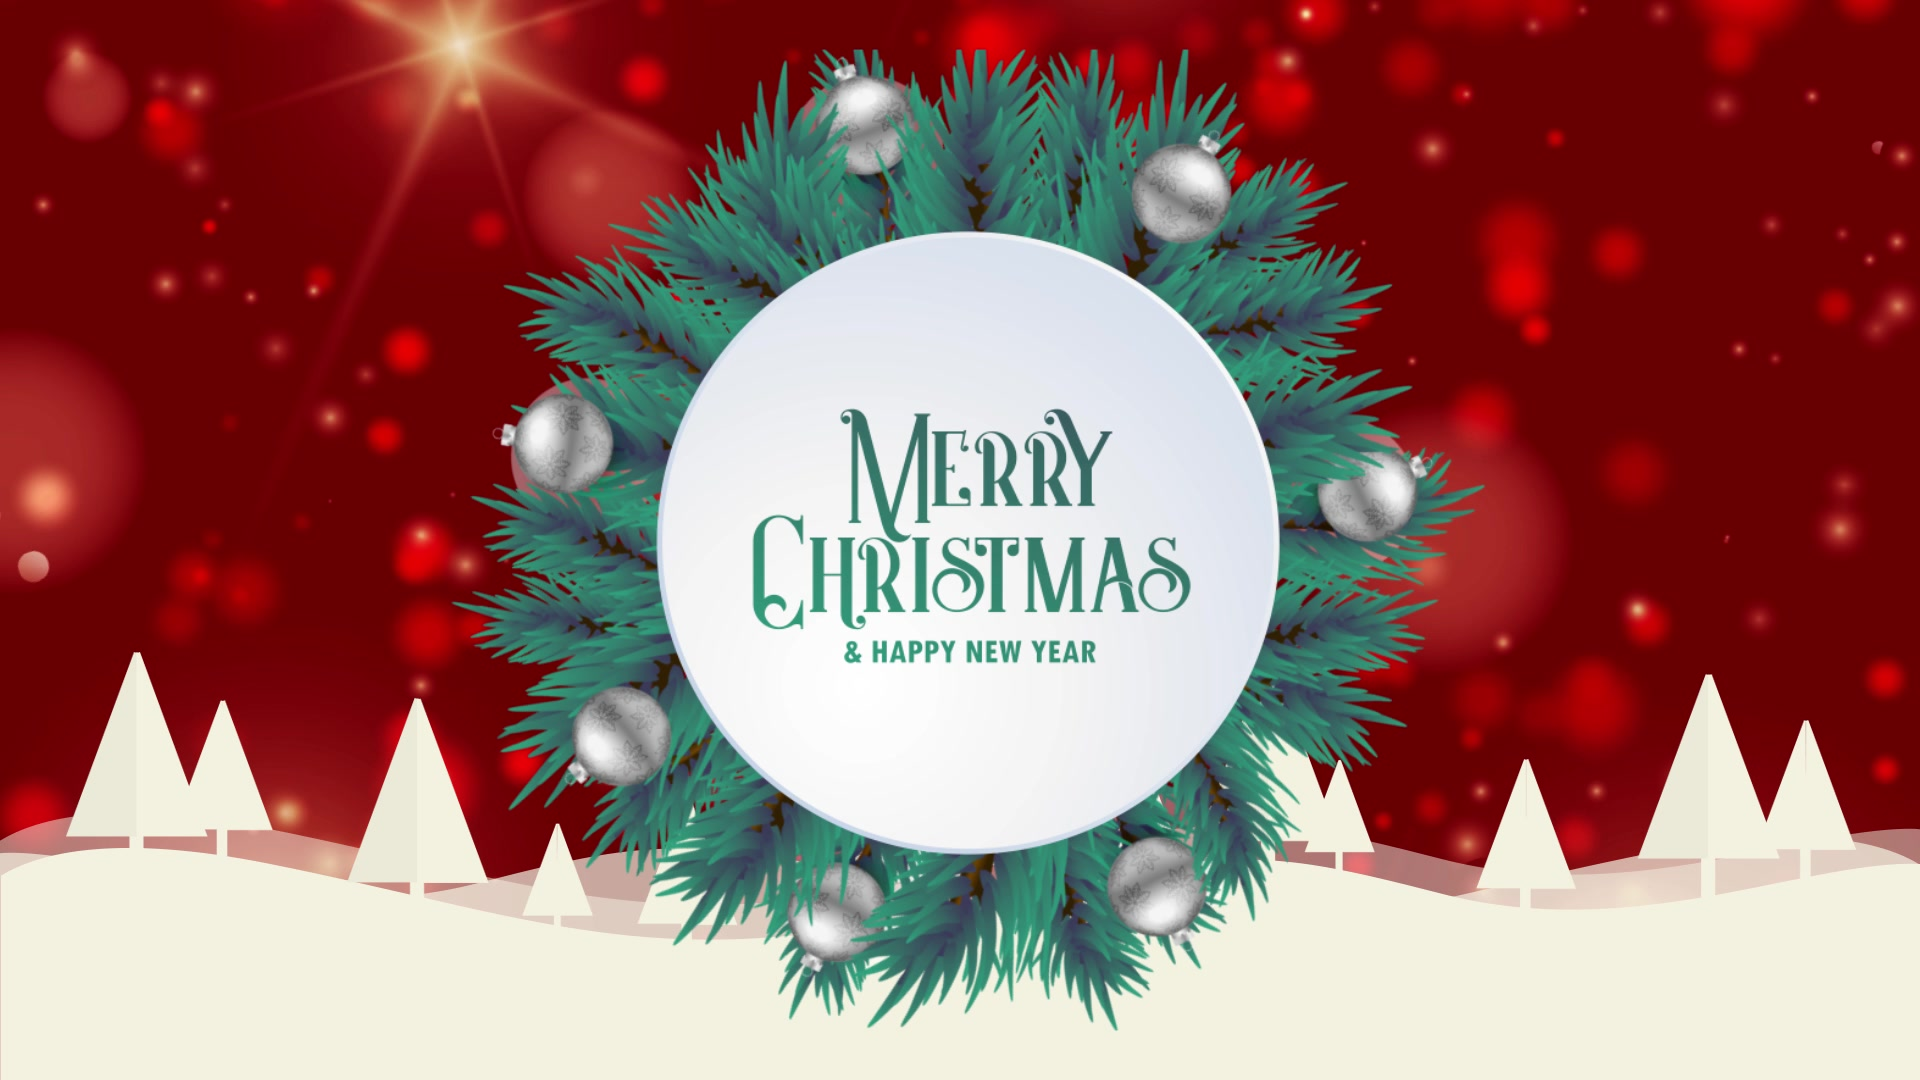 merry christmas greeting card animation red bokeh background trees snow free hd video clips stock video footage at videezy